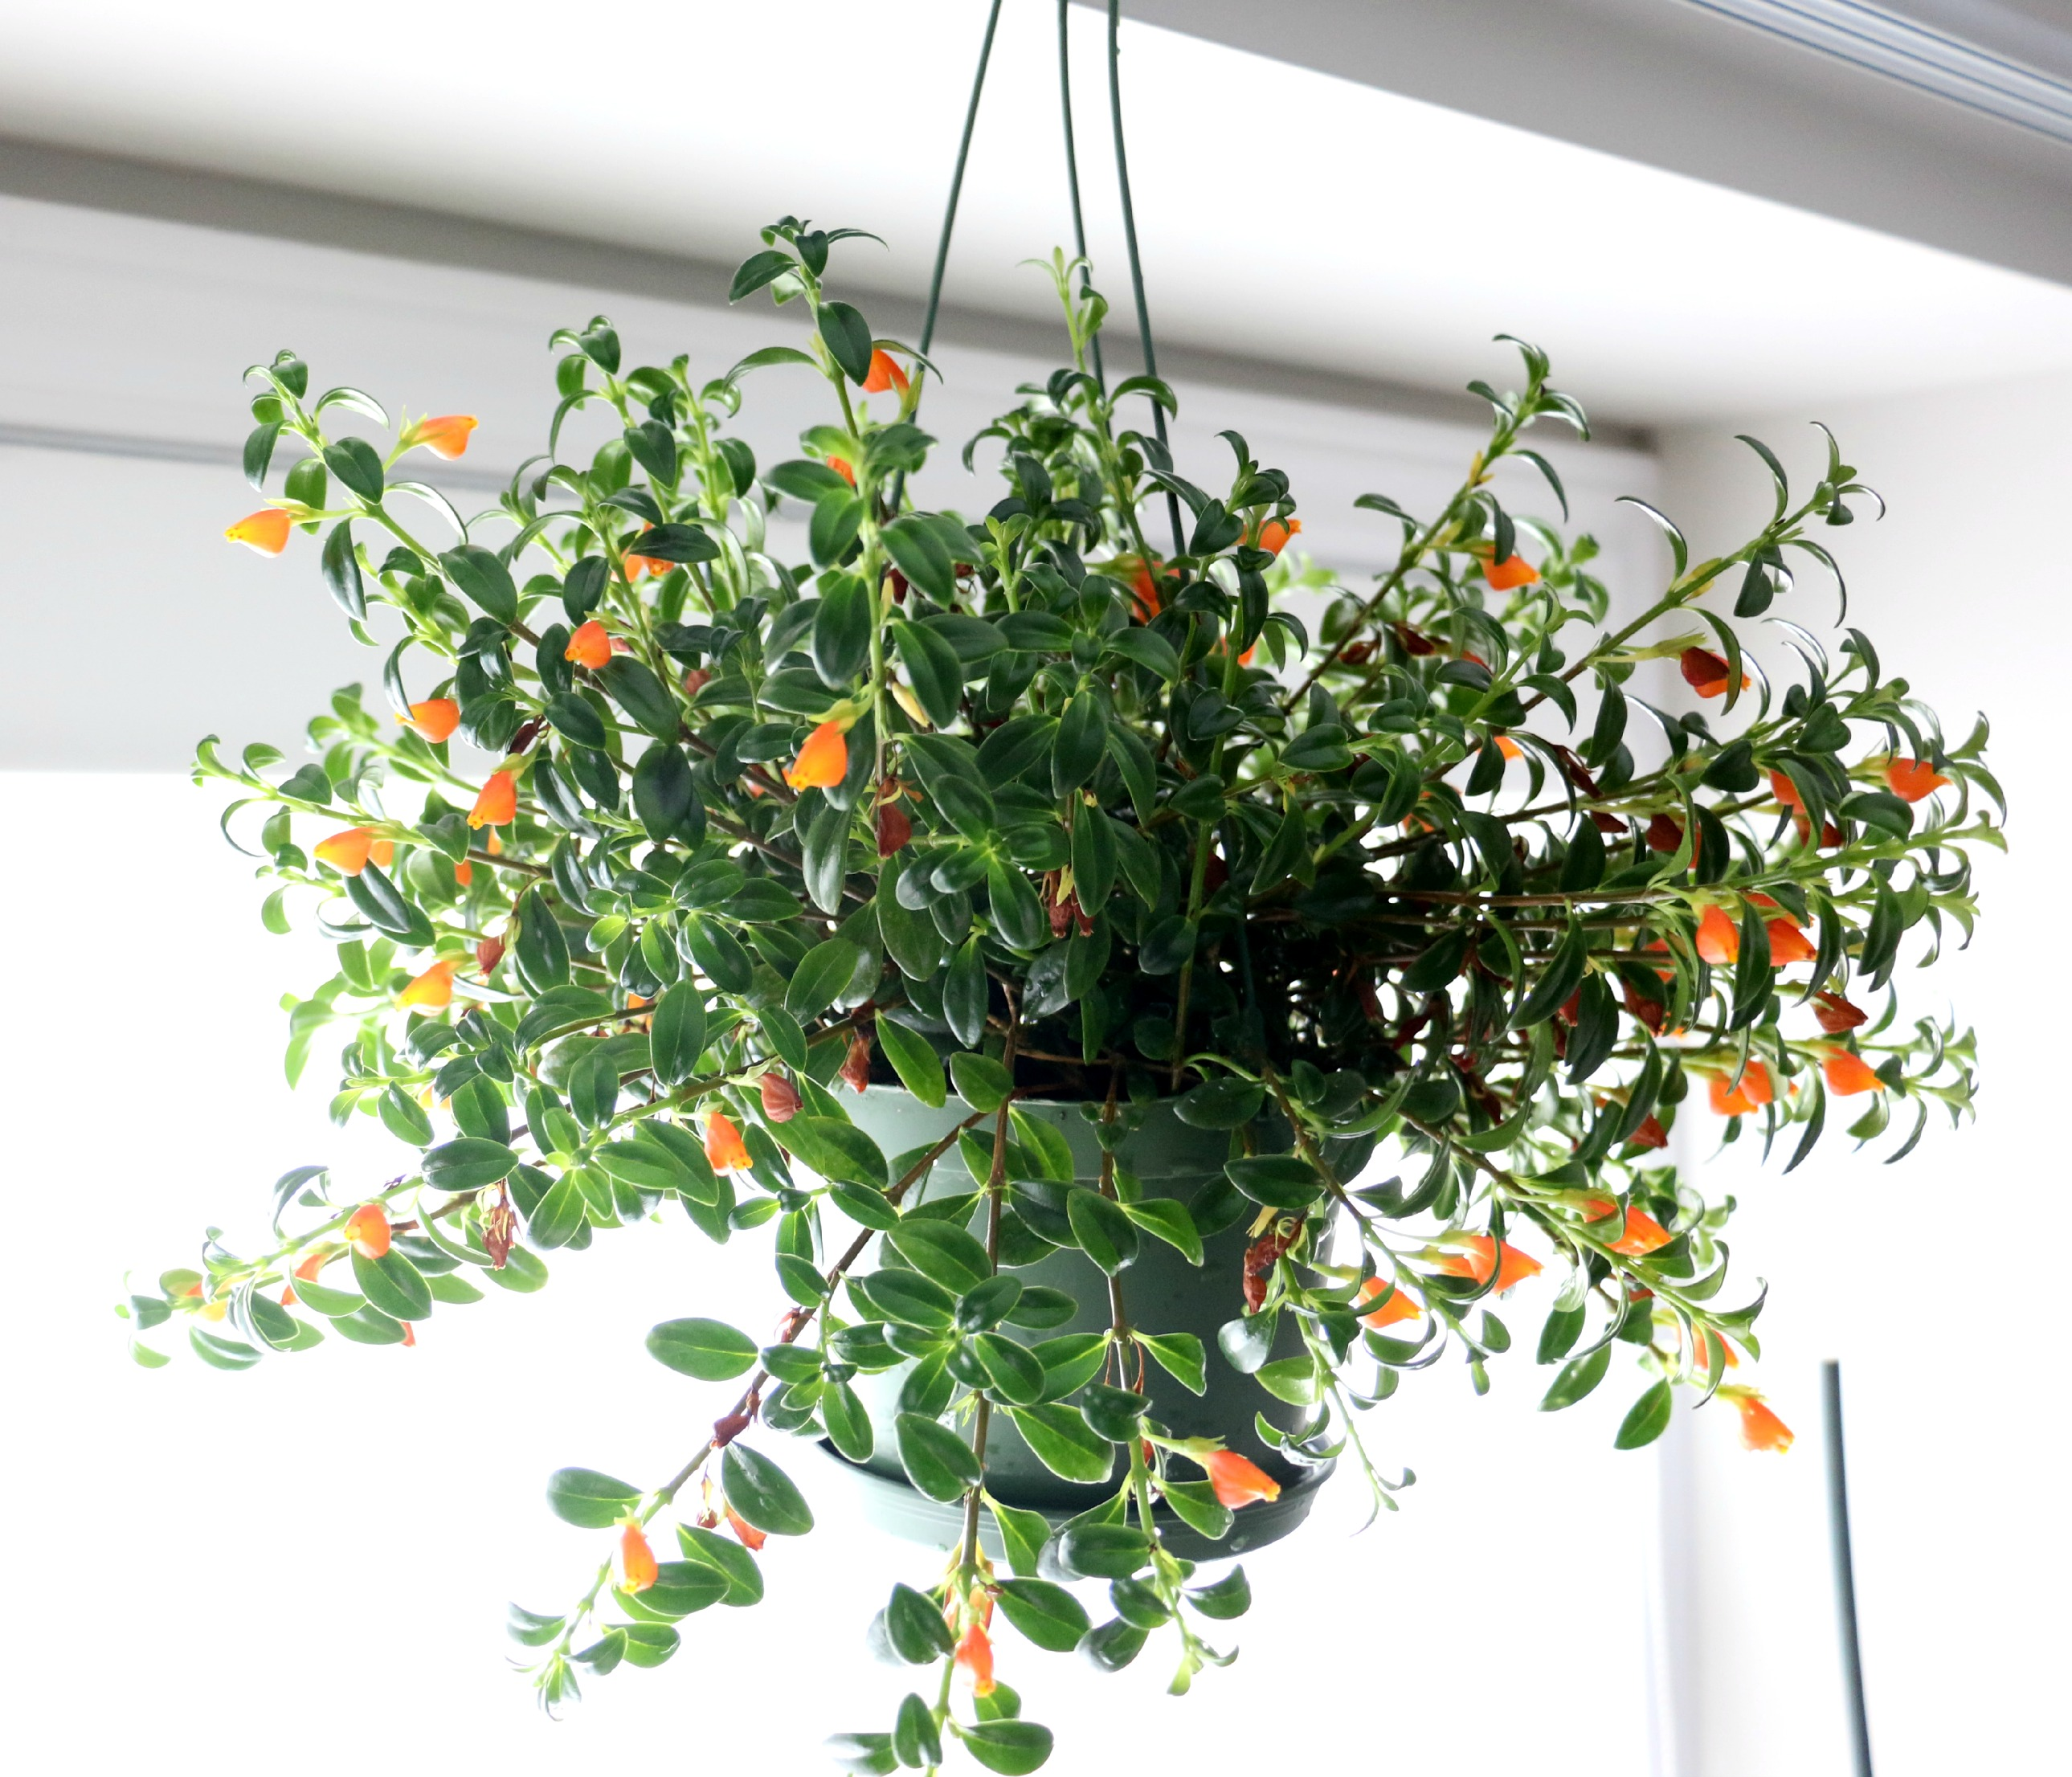 Guppy, The Goldfish Plant